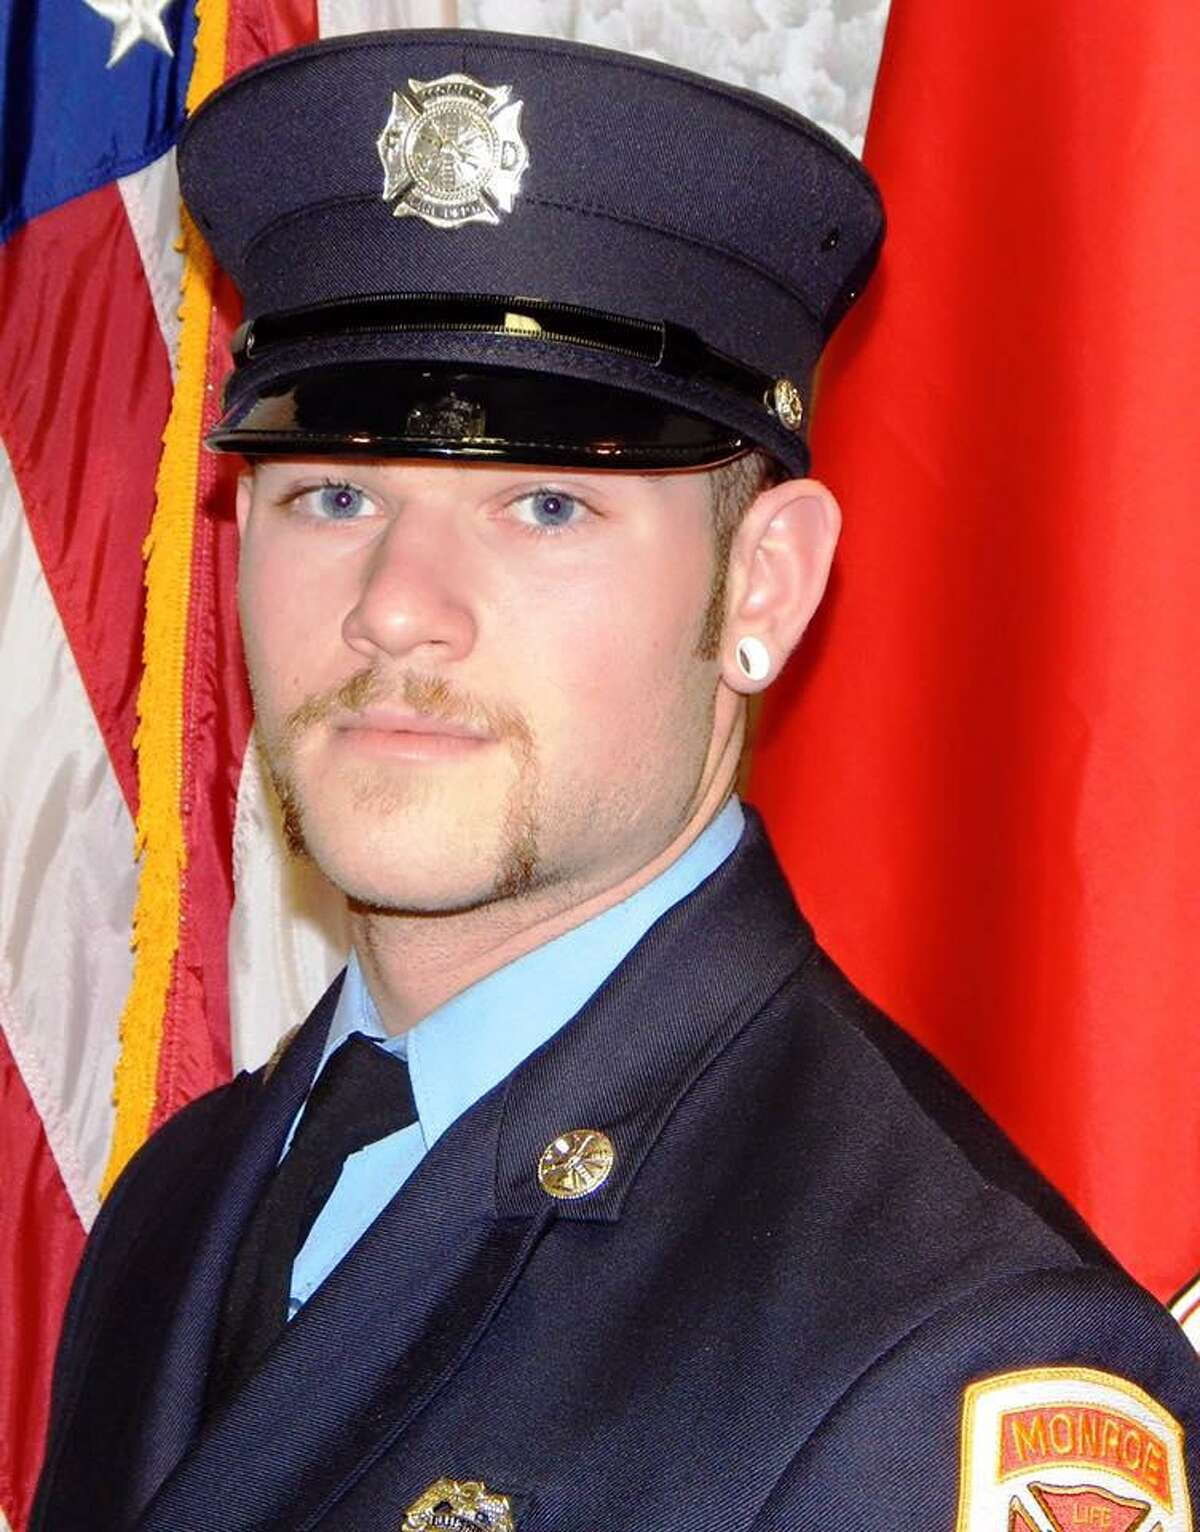 Forrest Ryan, 24, of Monroe, was killed on Monday, June 13, 2016 when the Harley-Davidson motorcycle he was riding was struck by a Land Rover on Main Street, near Stanley Street. Ryan was a member of the Monroe Volunteer Fire Department